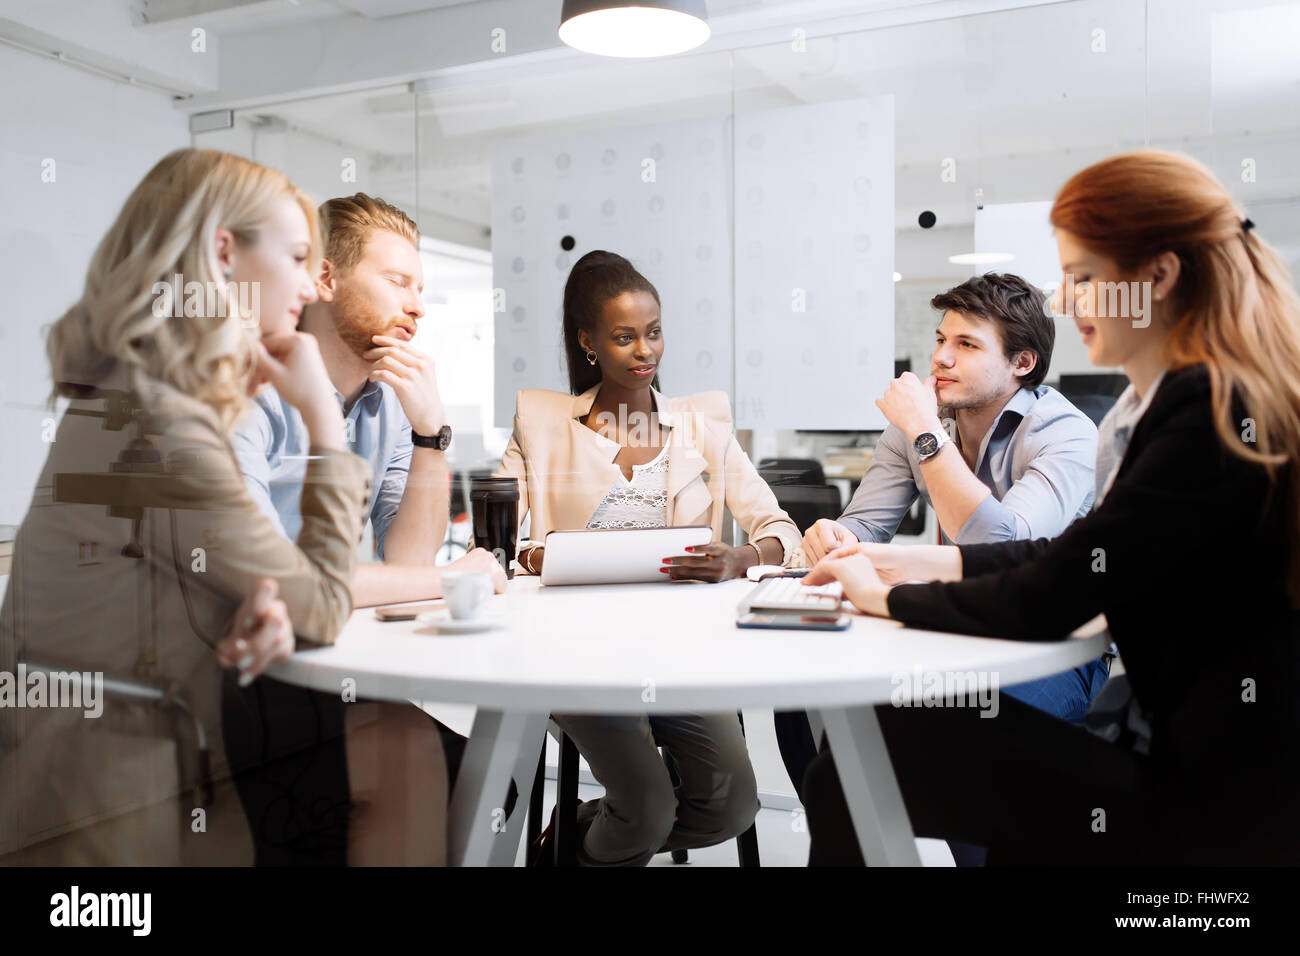 Group of business people sitting at desk and discussing new ideas - Stock Image